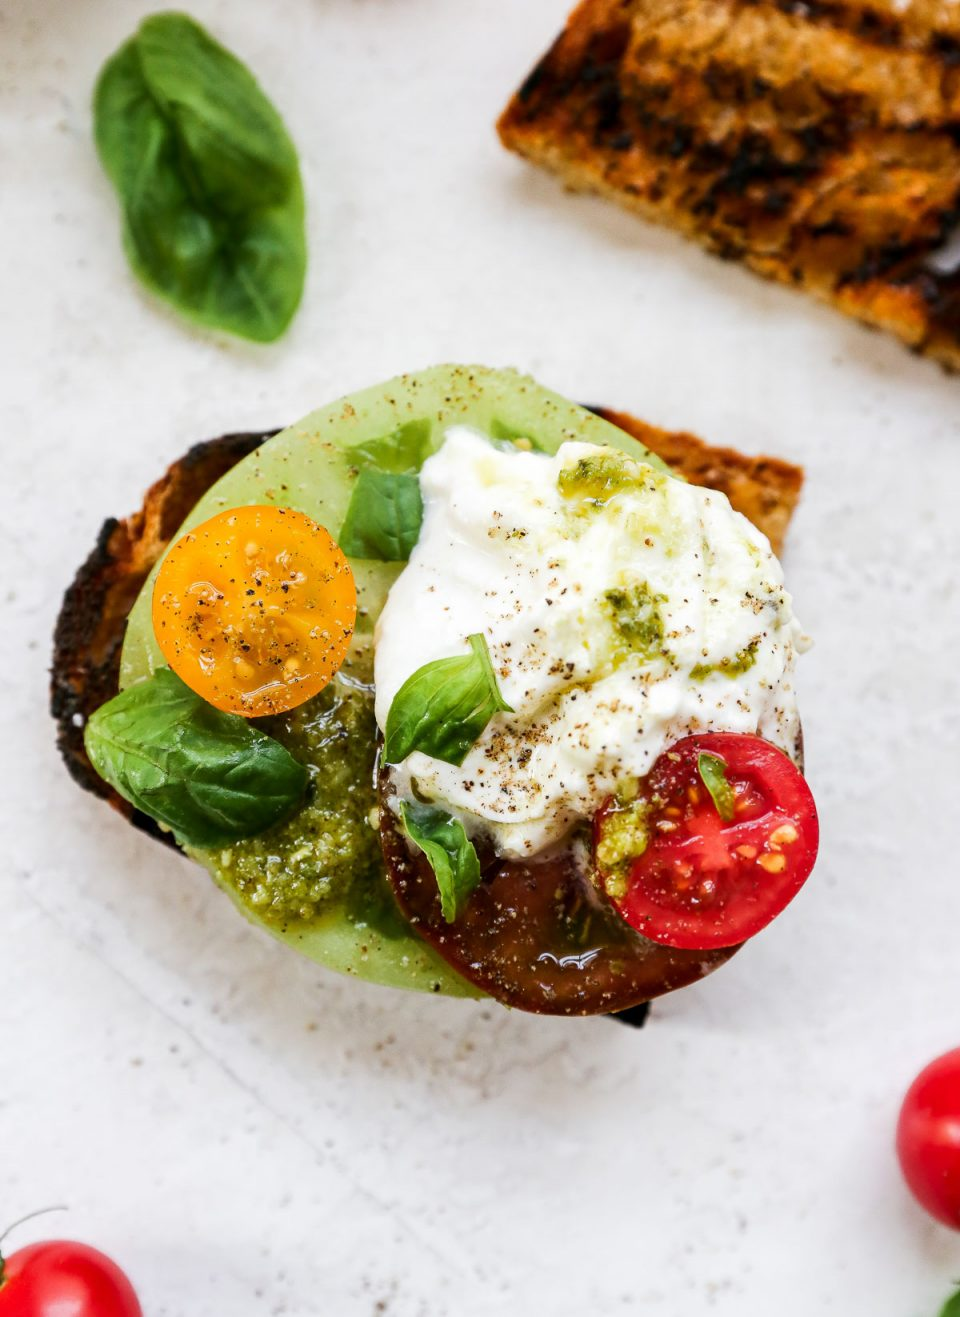 Burrata Caprese Salad served on a piece of grilled bread. The bread sits atop a neutral background, surrounded by whole cherry tomatoes, fresh bail leaves & a jar of basil pesto sauce.